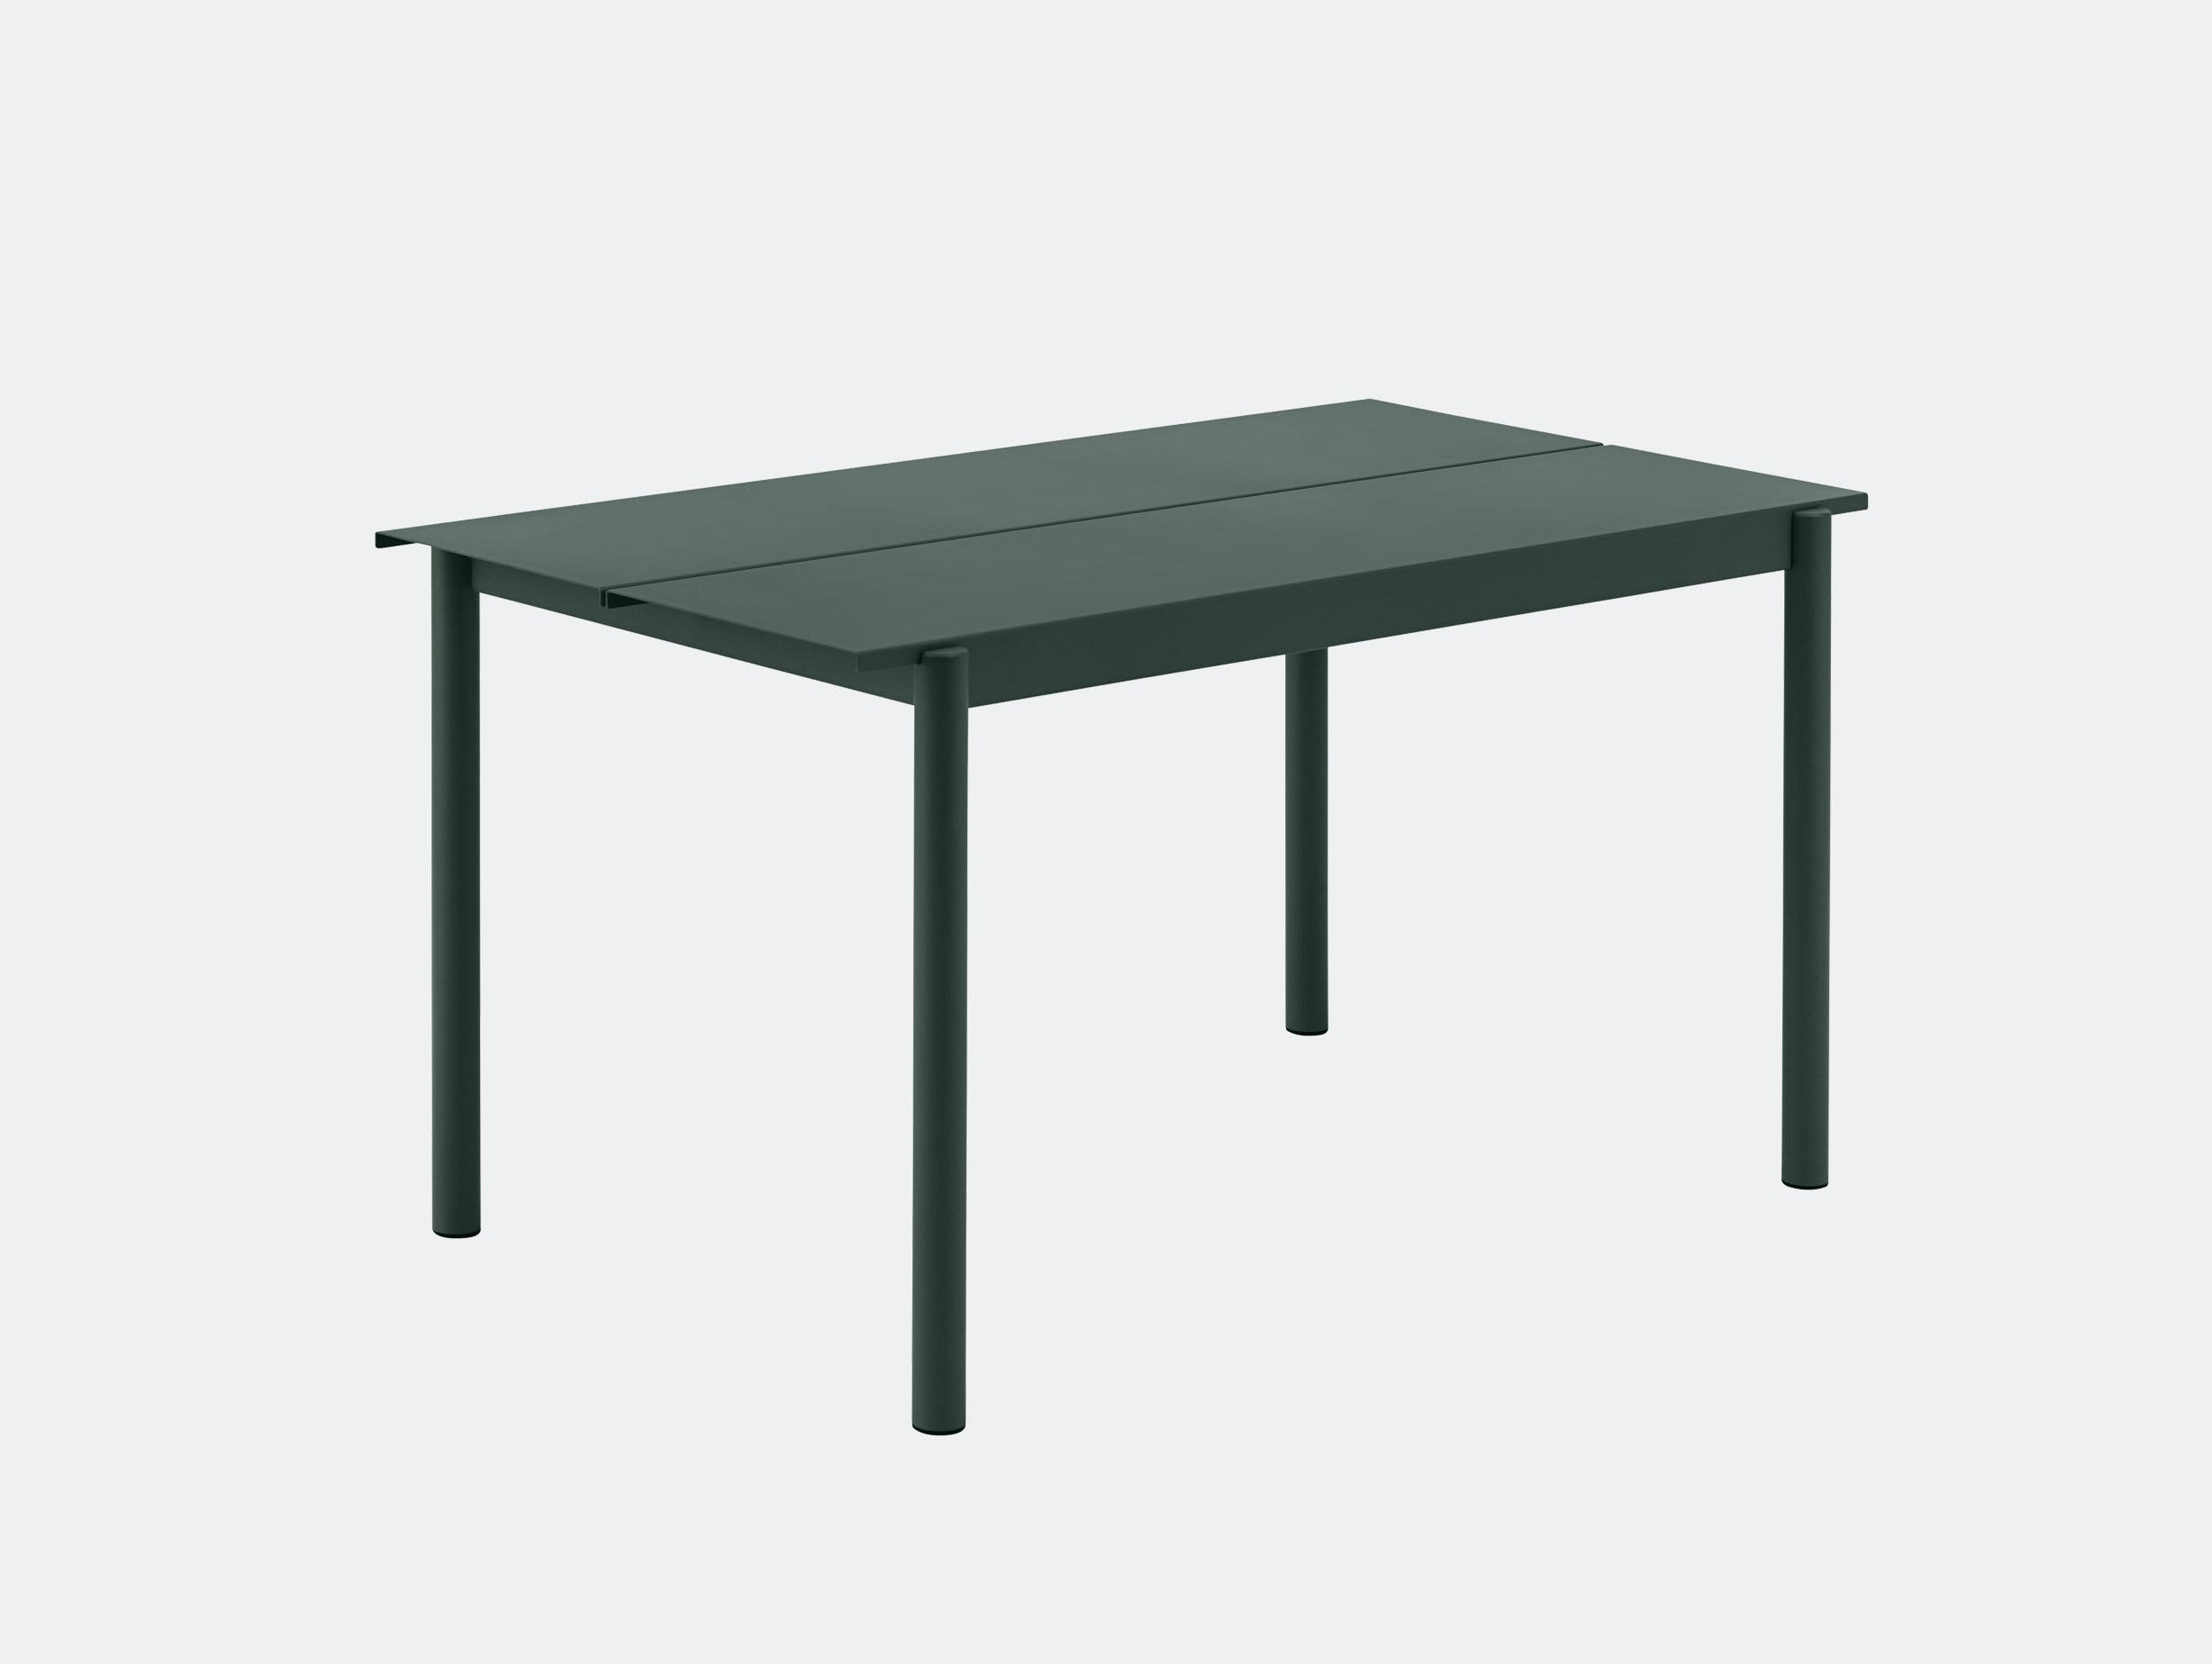 Muuto Linear Steel Outdoor Table L 140Cm Dark Green Thomas Bentzen